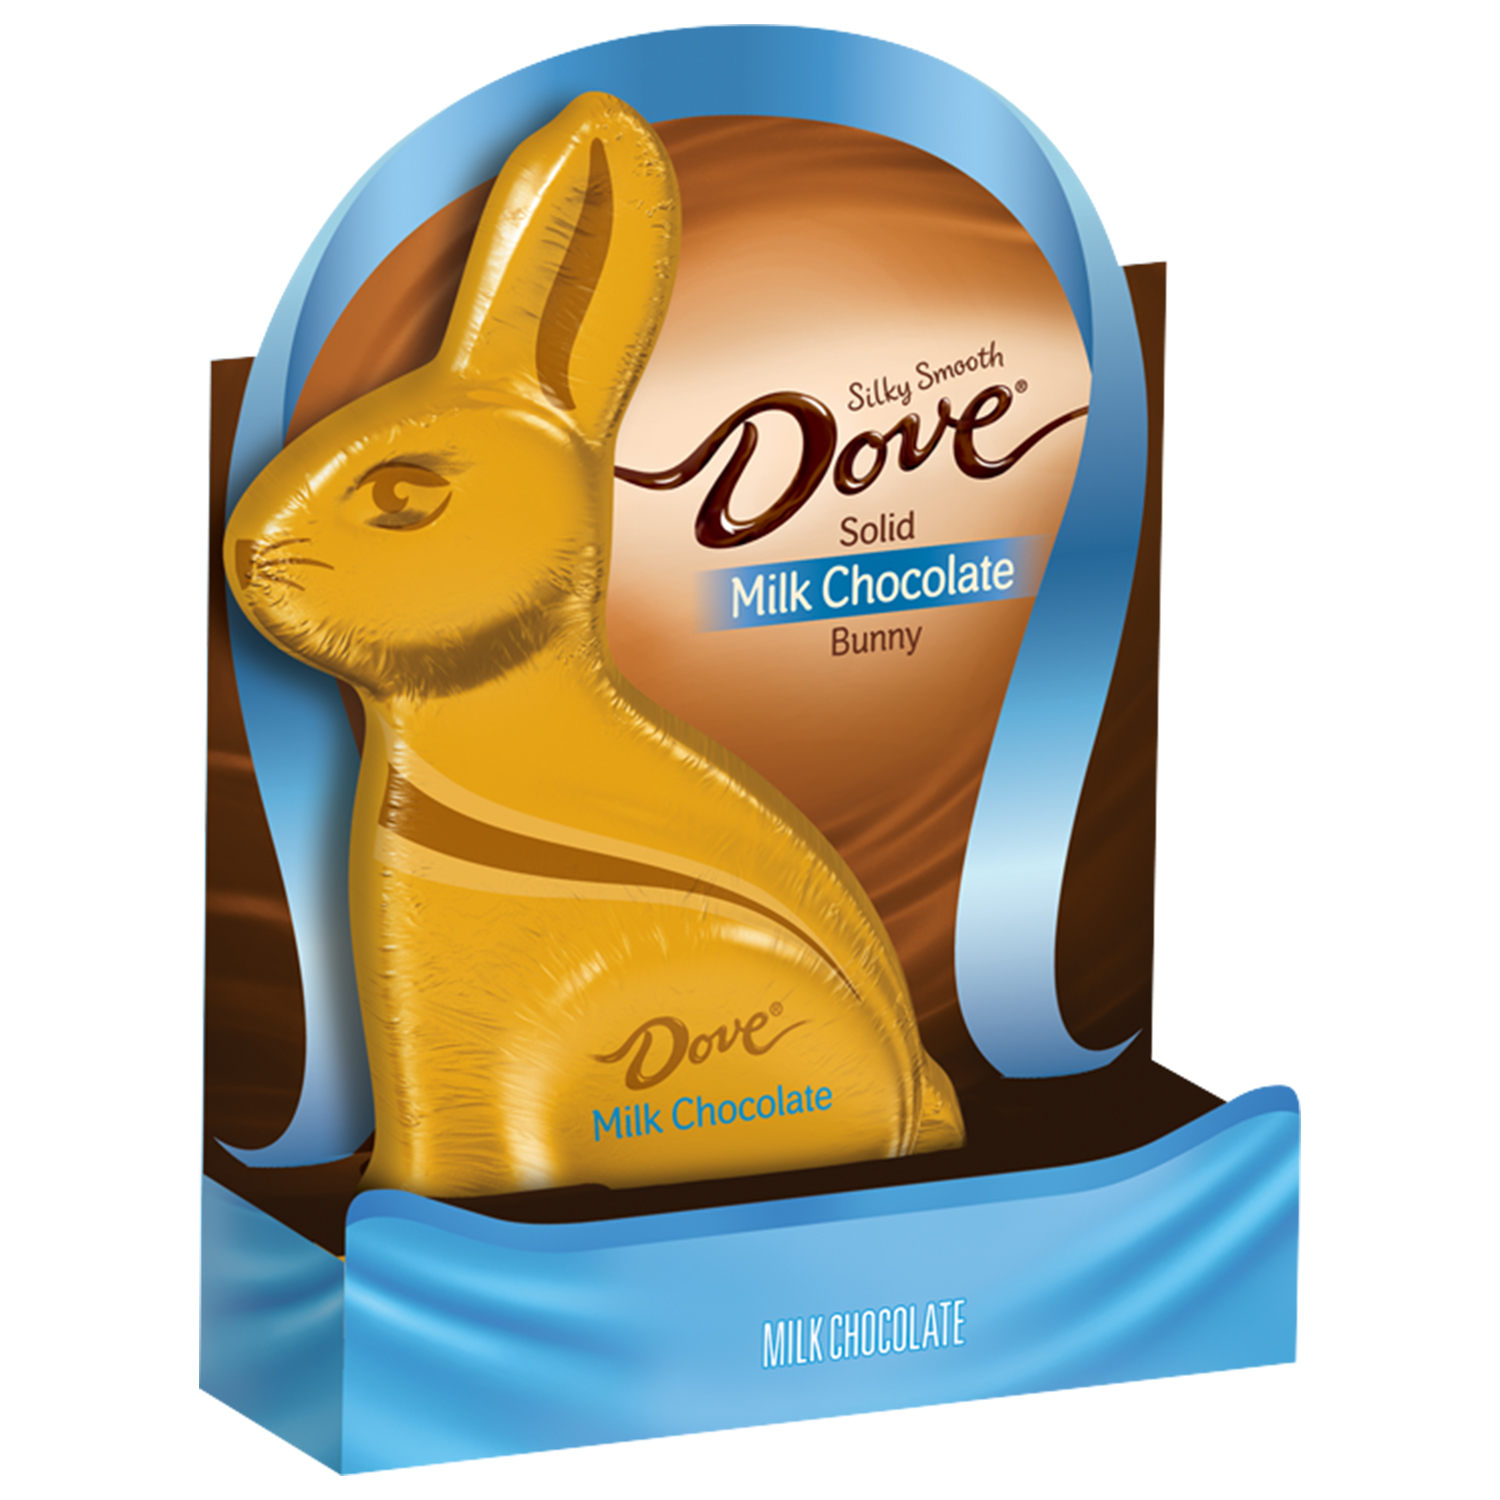 DOVE Easter Milk Chocolate Candy Solid Easter Bunny Box, 4.5 oz